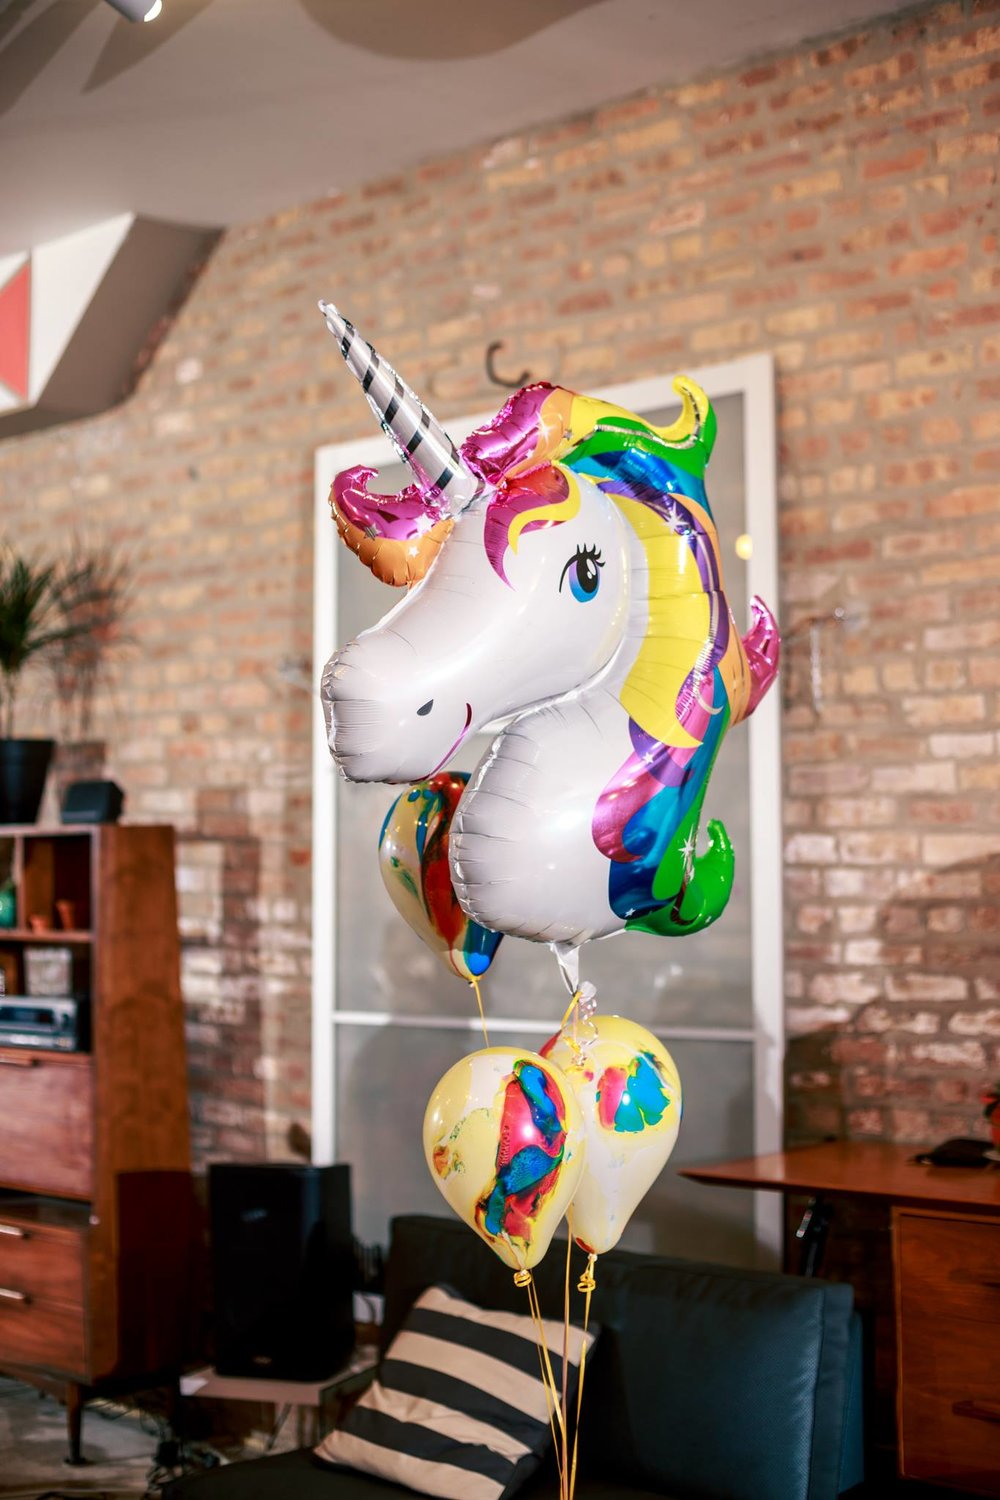 unicorn_balloon_30th_birthday_party_city_event_planner_the_living_room_chicago_venue_tlr